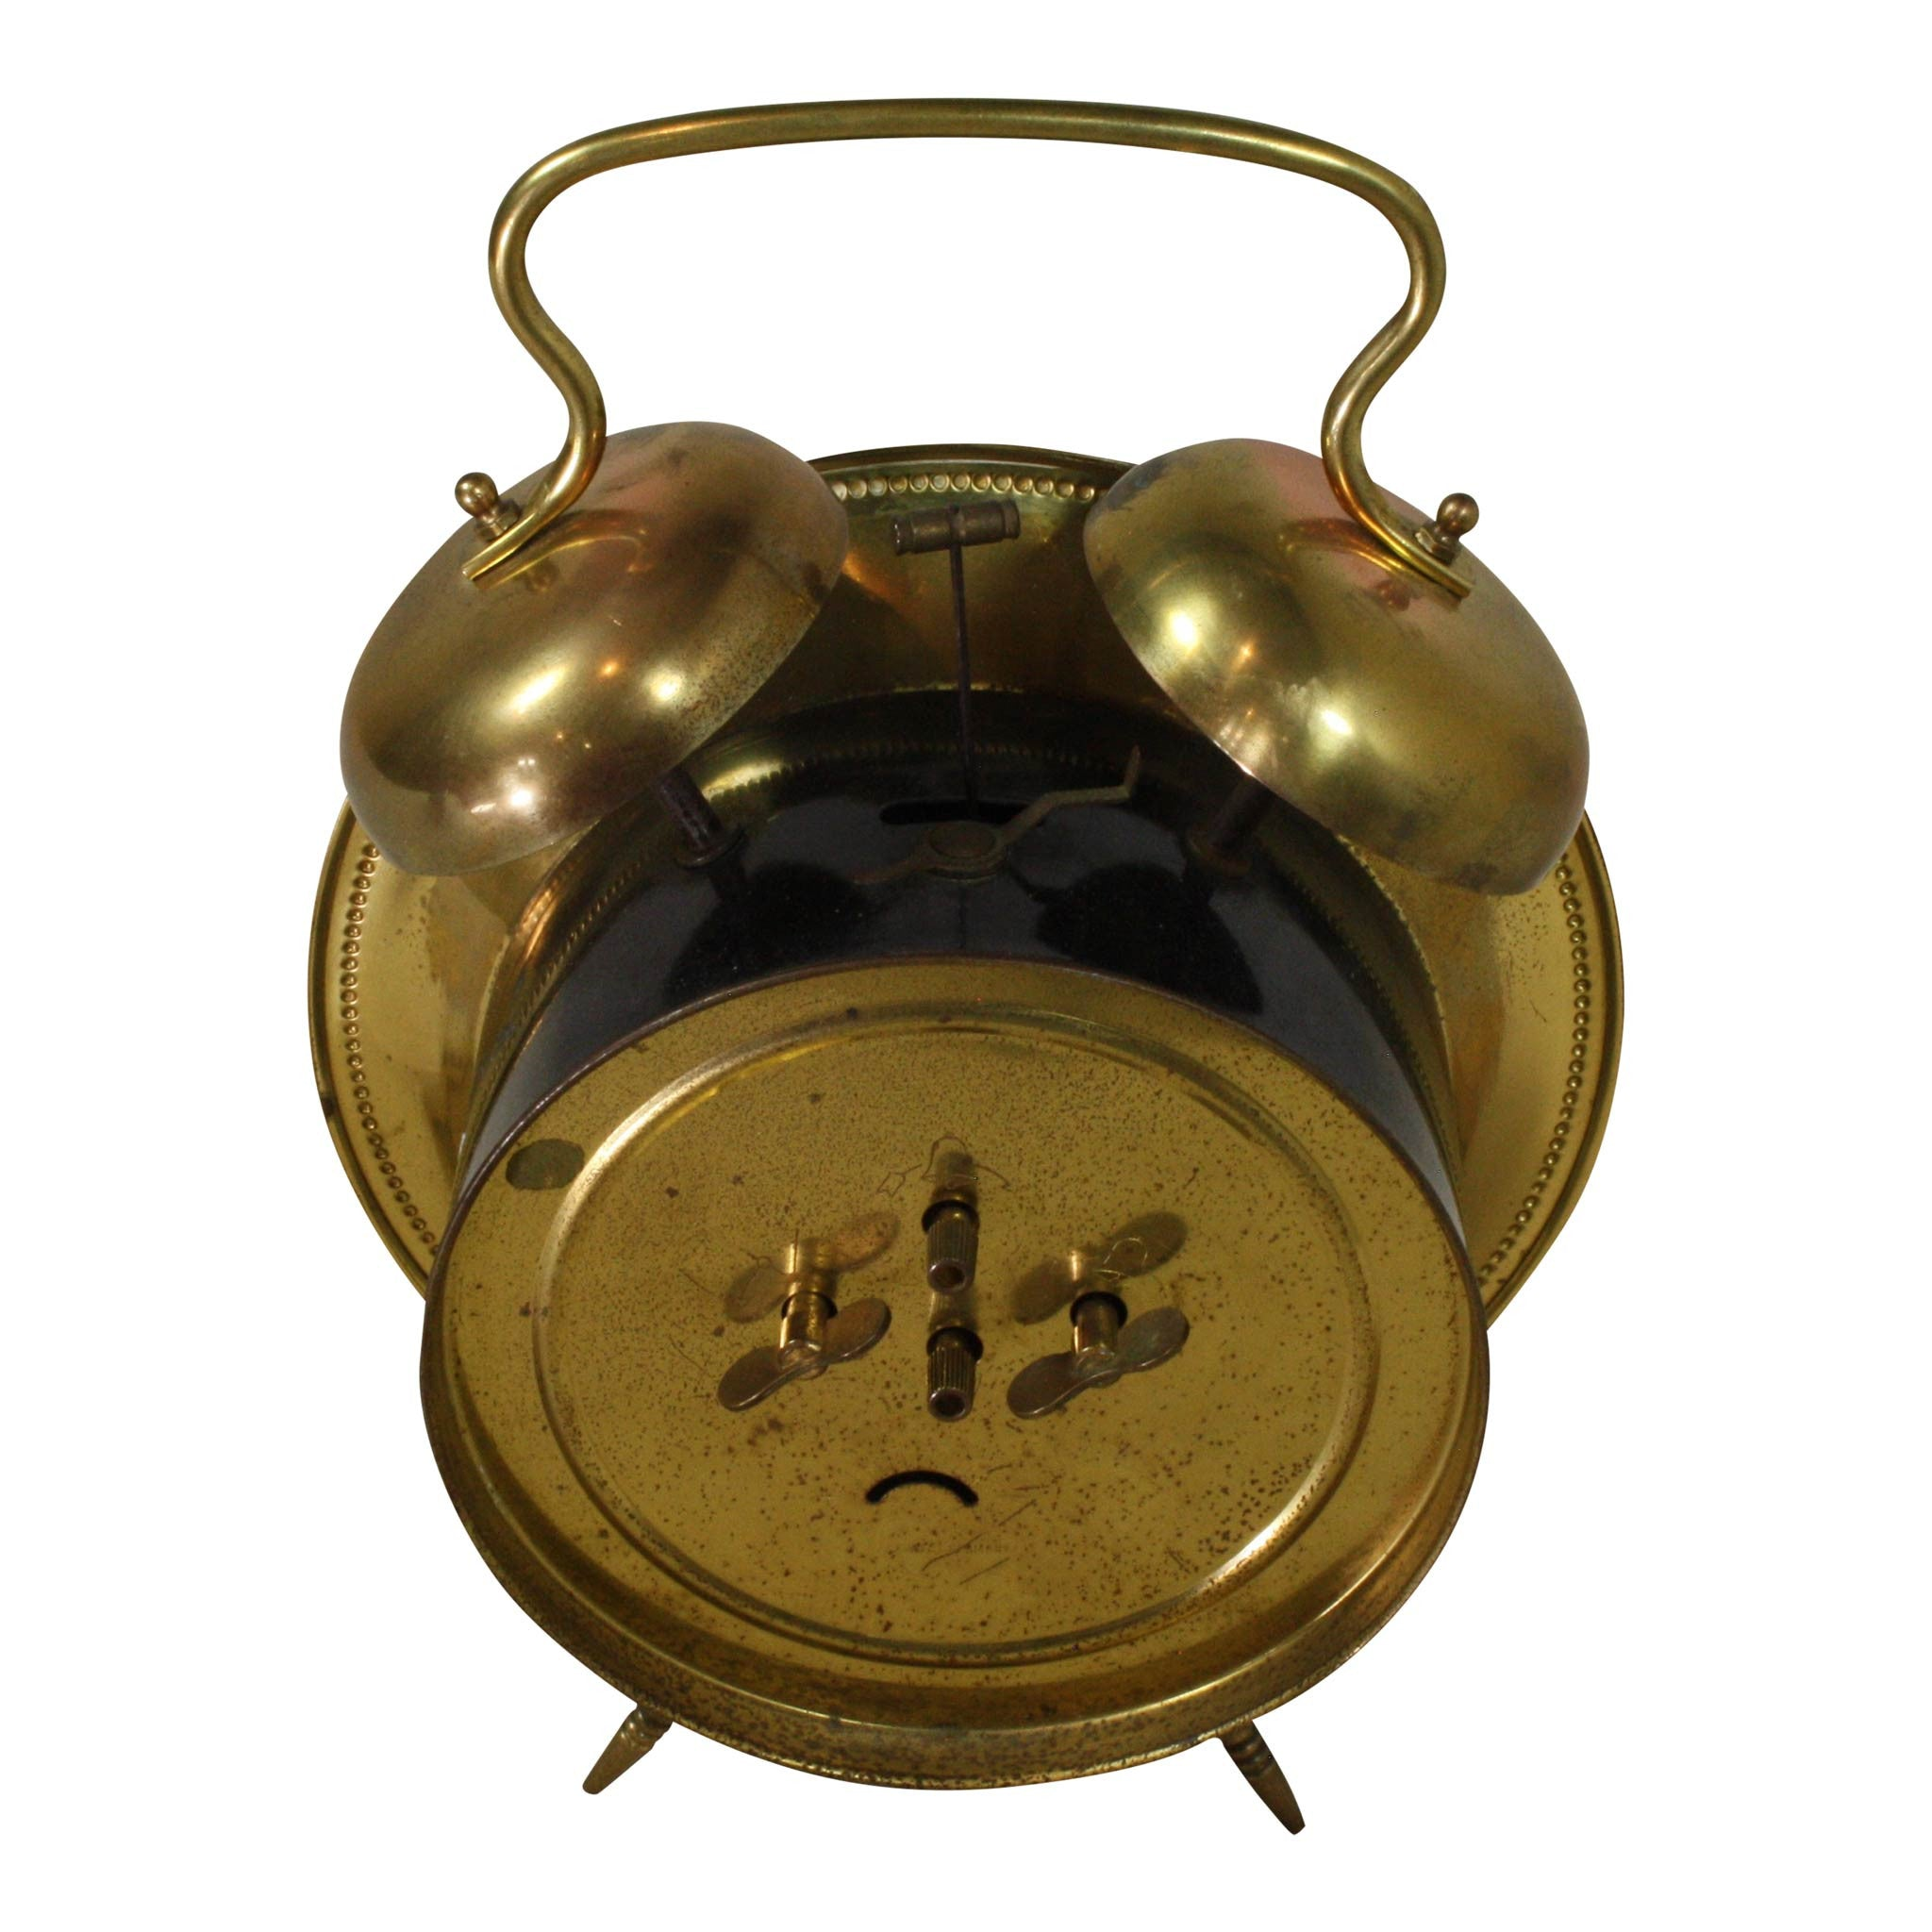 Kaiser German Alarm Clock